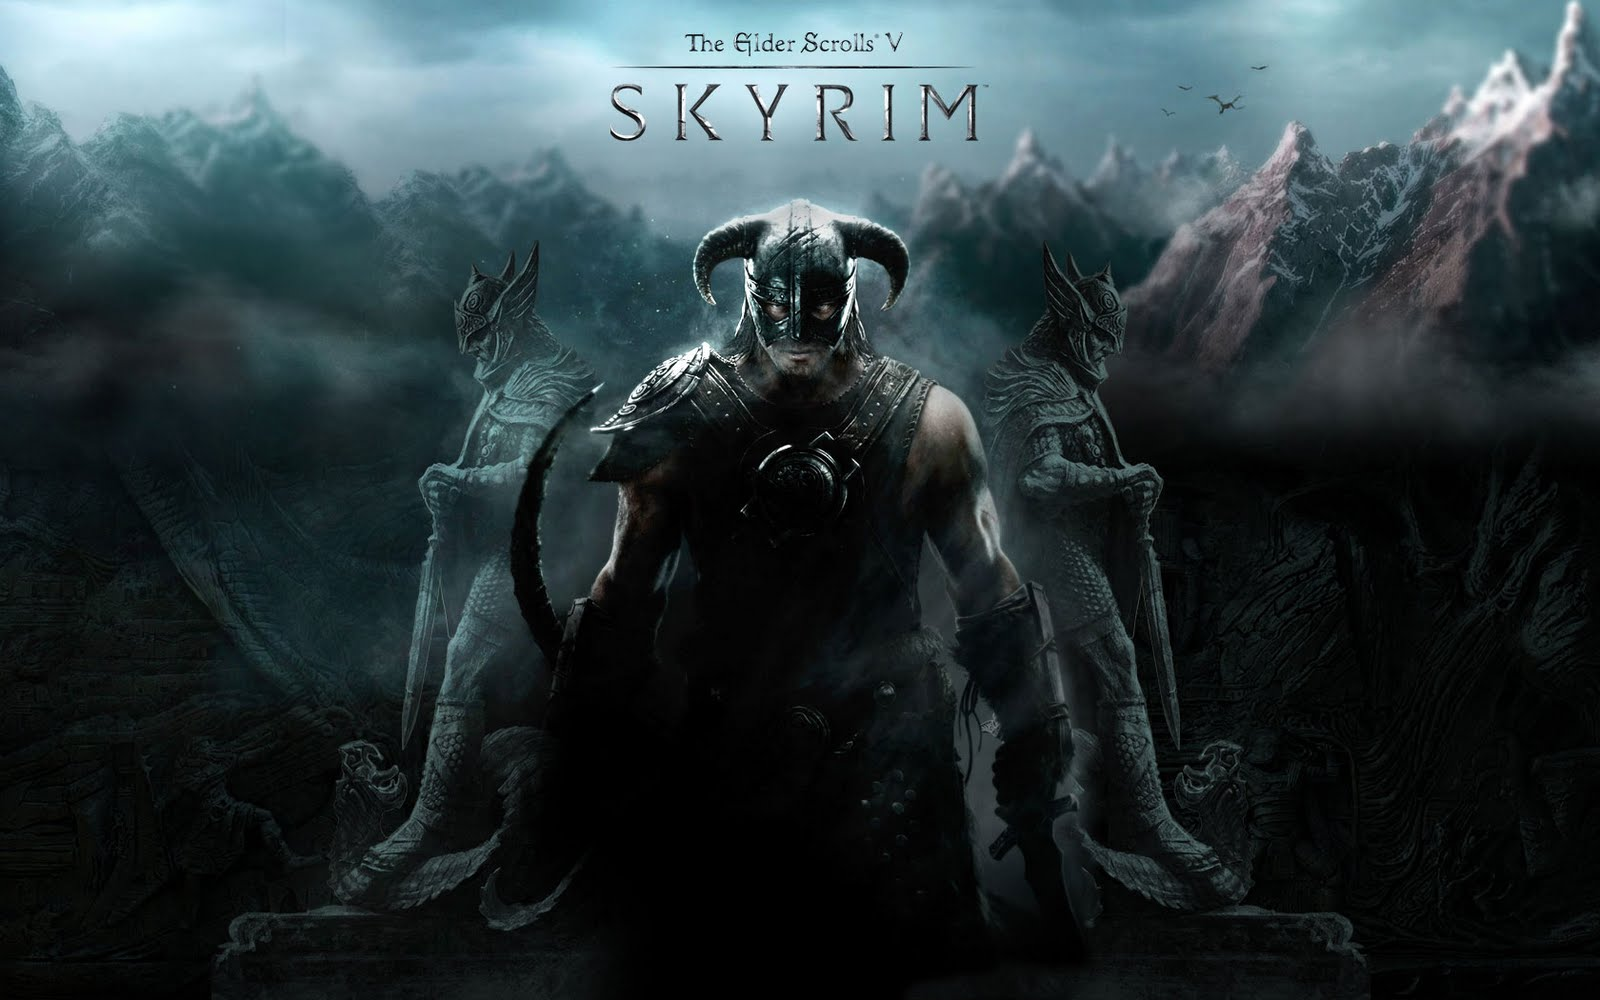 The Elder Scrolls V: Skyrim pc game screen shots